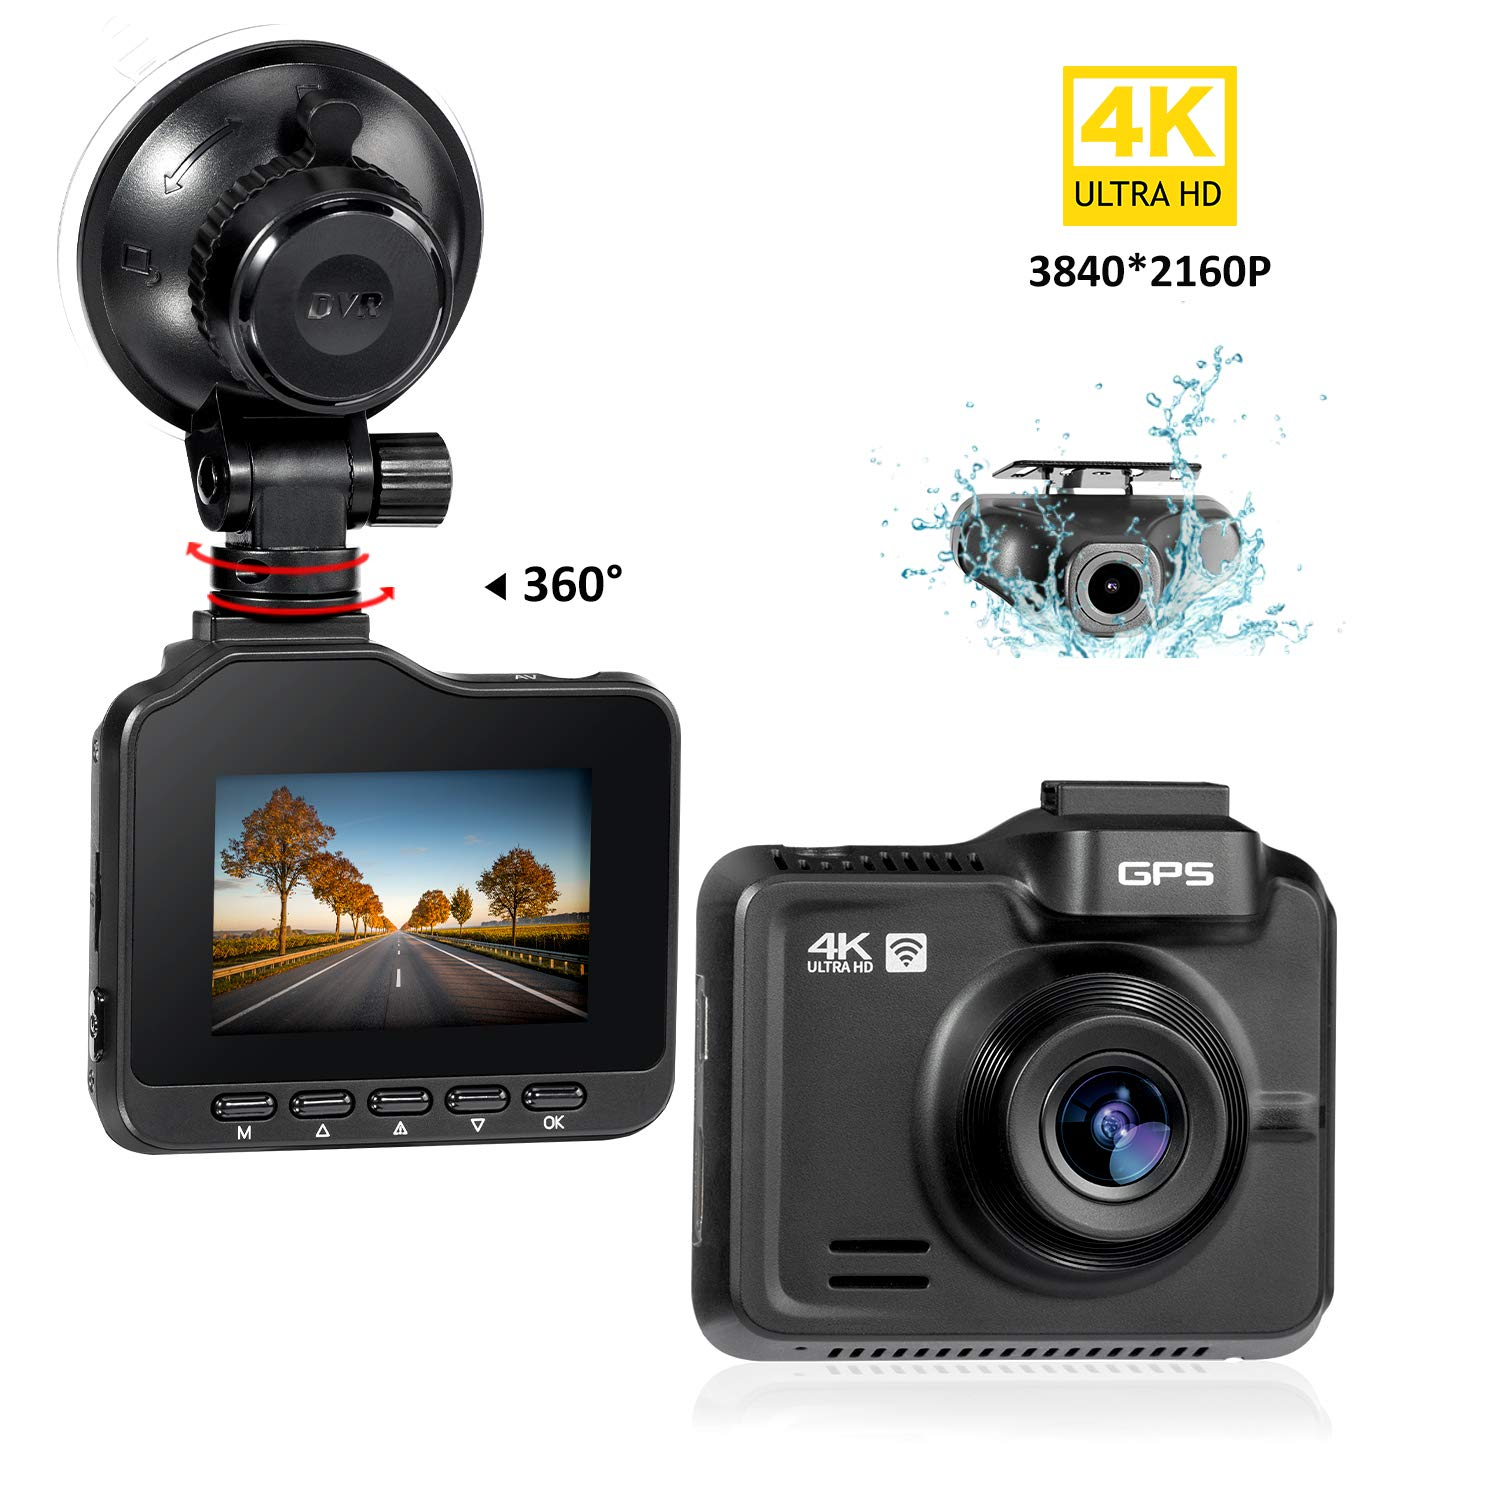 Lifechaser Dual Dash Cam 4K+1080P Front and Rear Car Camera 3840x2160P WiFi GPS Night Vision, 2.4'' IPS Screen, 170° Wide Angle, Parking Mode, WDR, Time Lapse, G-Sensor, Loop Recording for Cars, Truck by Lifechaser